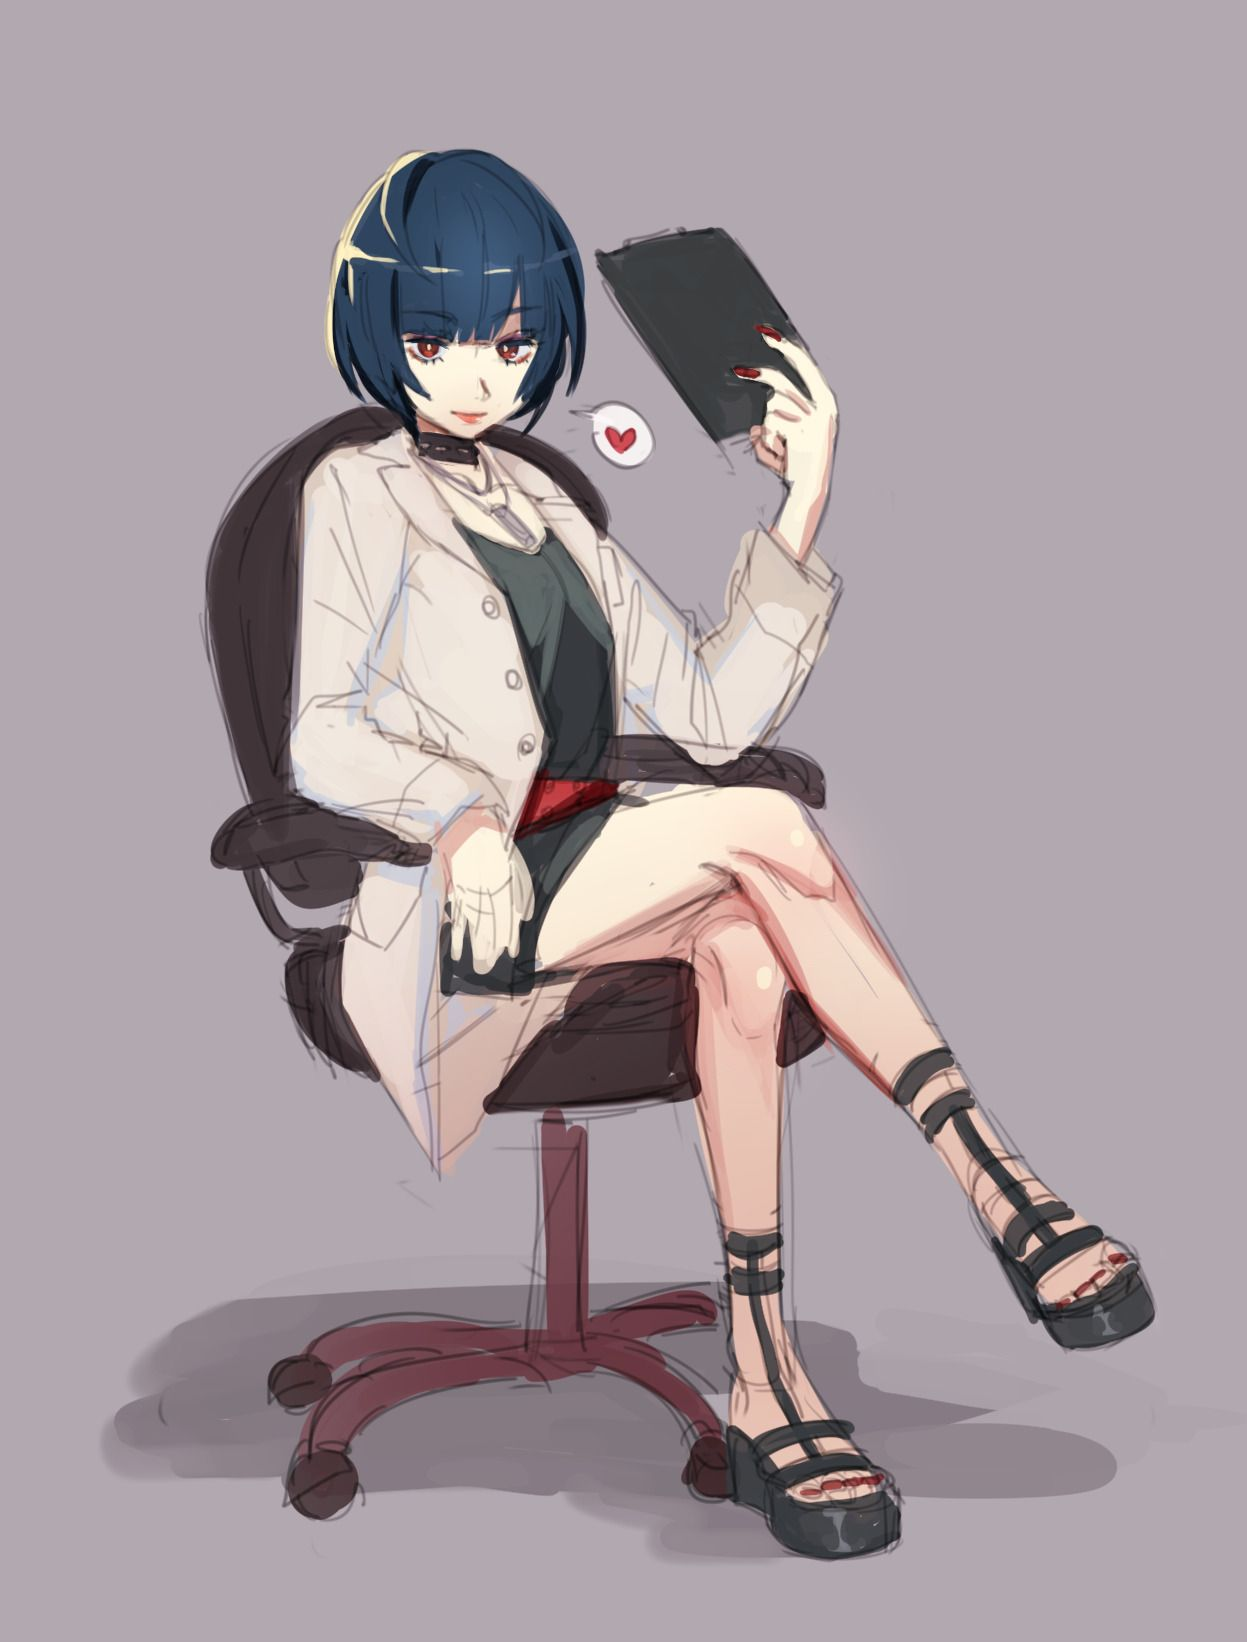 Pin by moon ♡ on Tae Takemi Anime, Persona 5, Persona